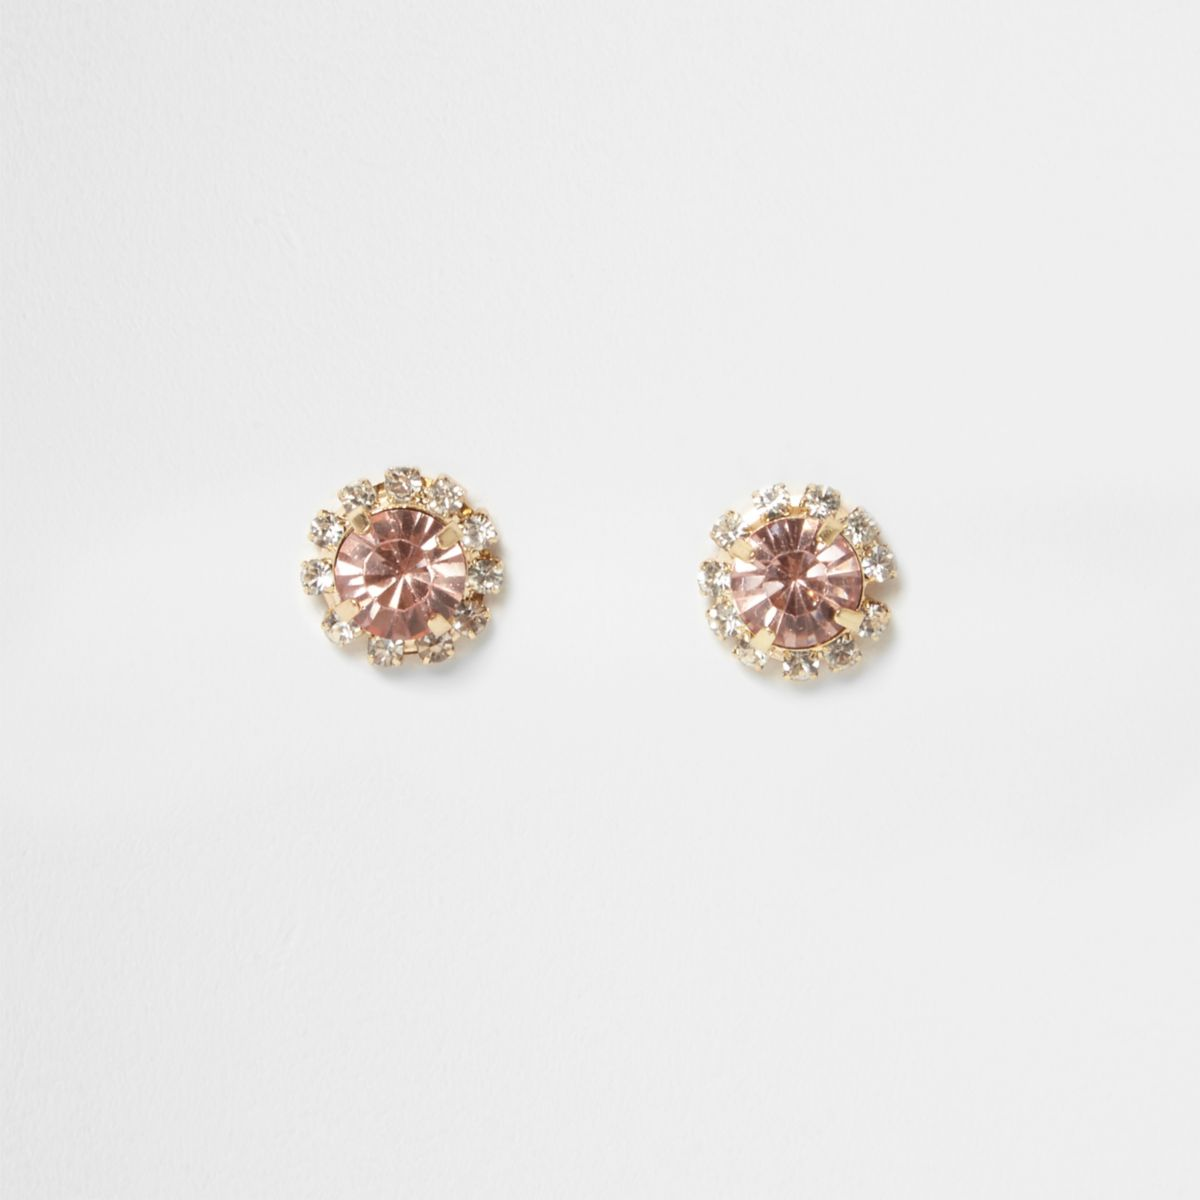 Pink stone rhinestone stud earrings